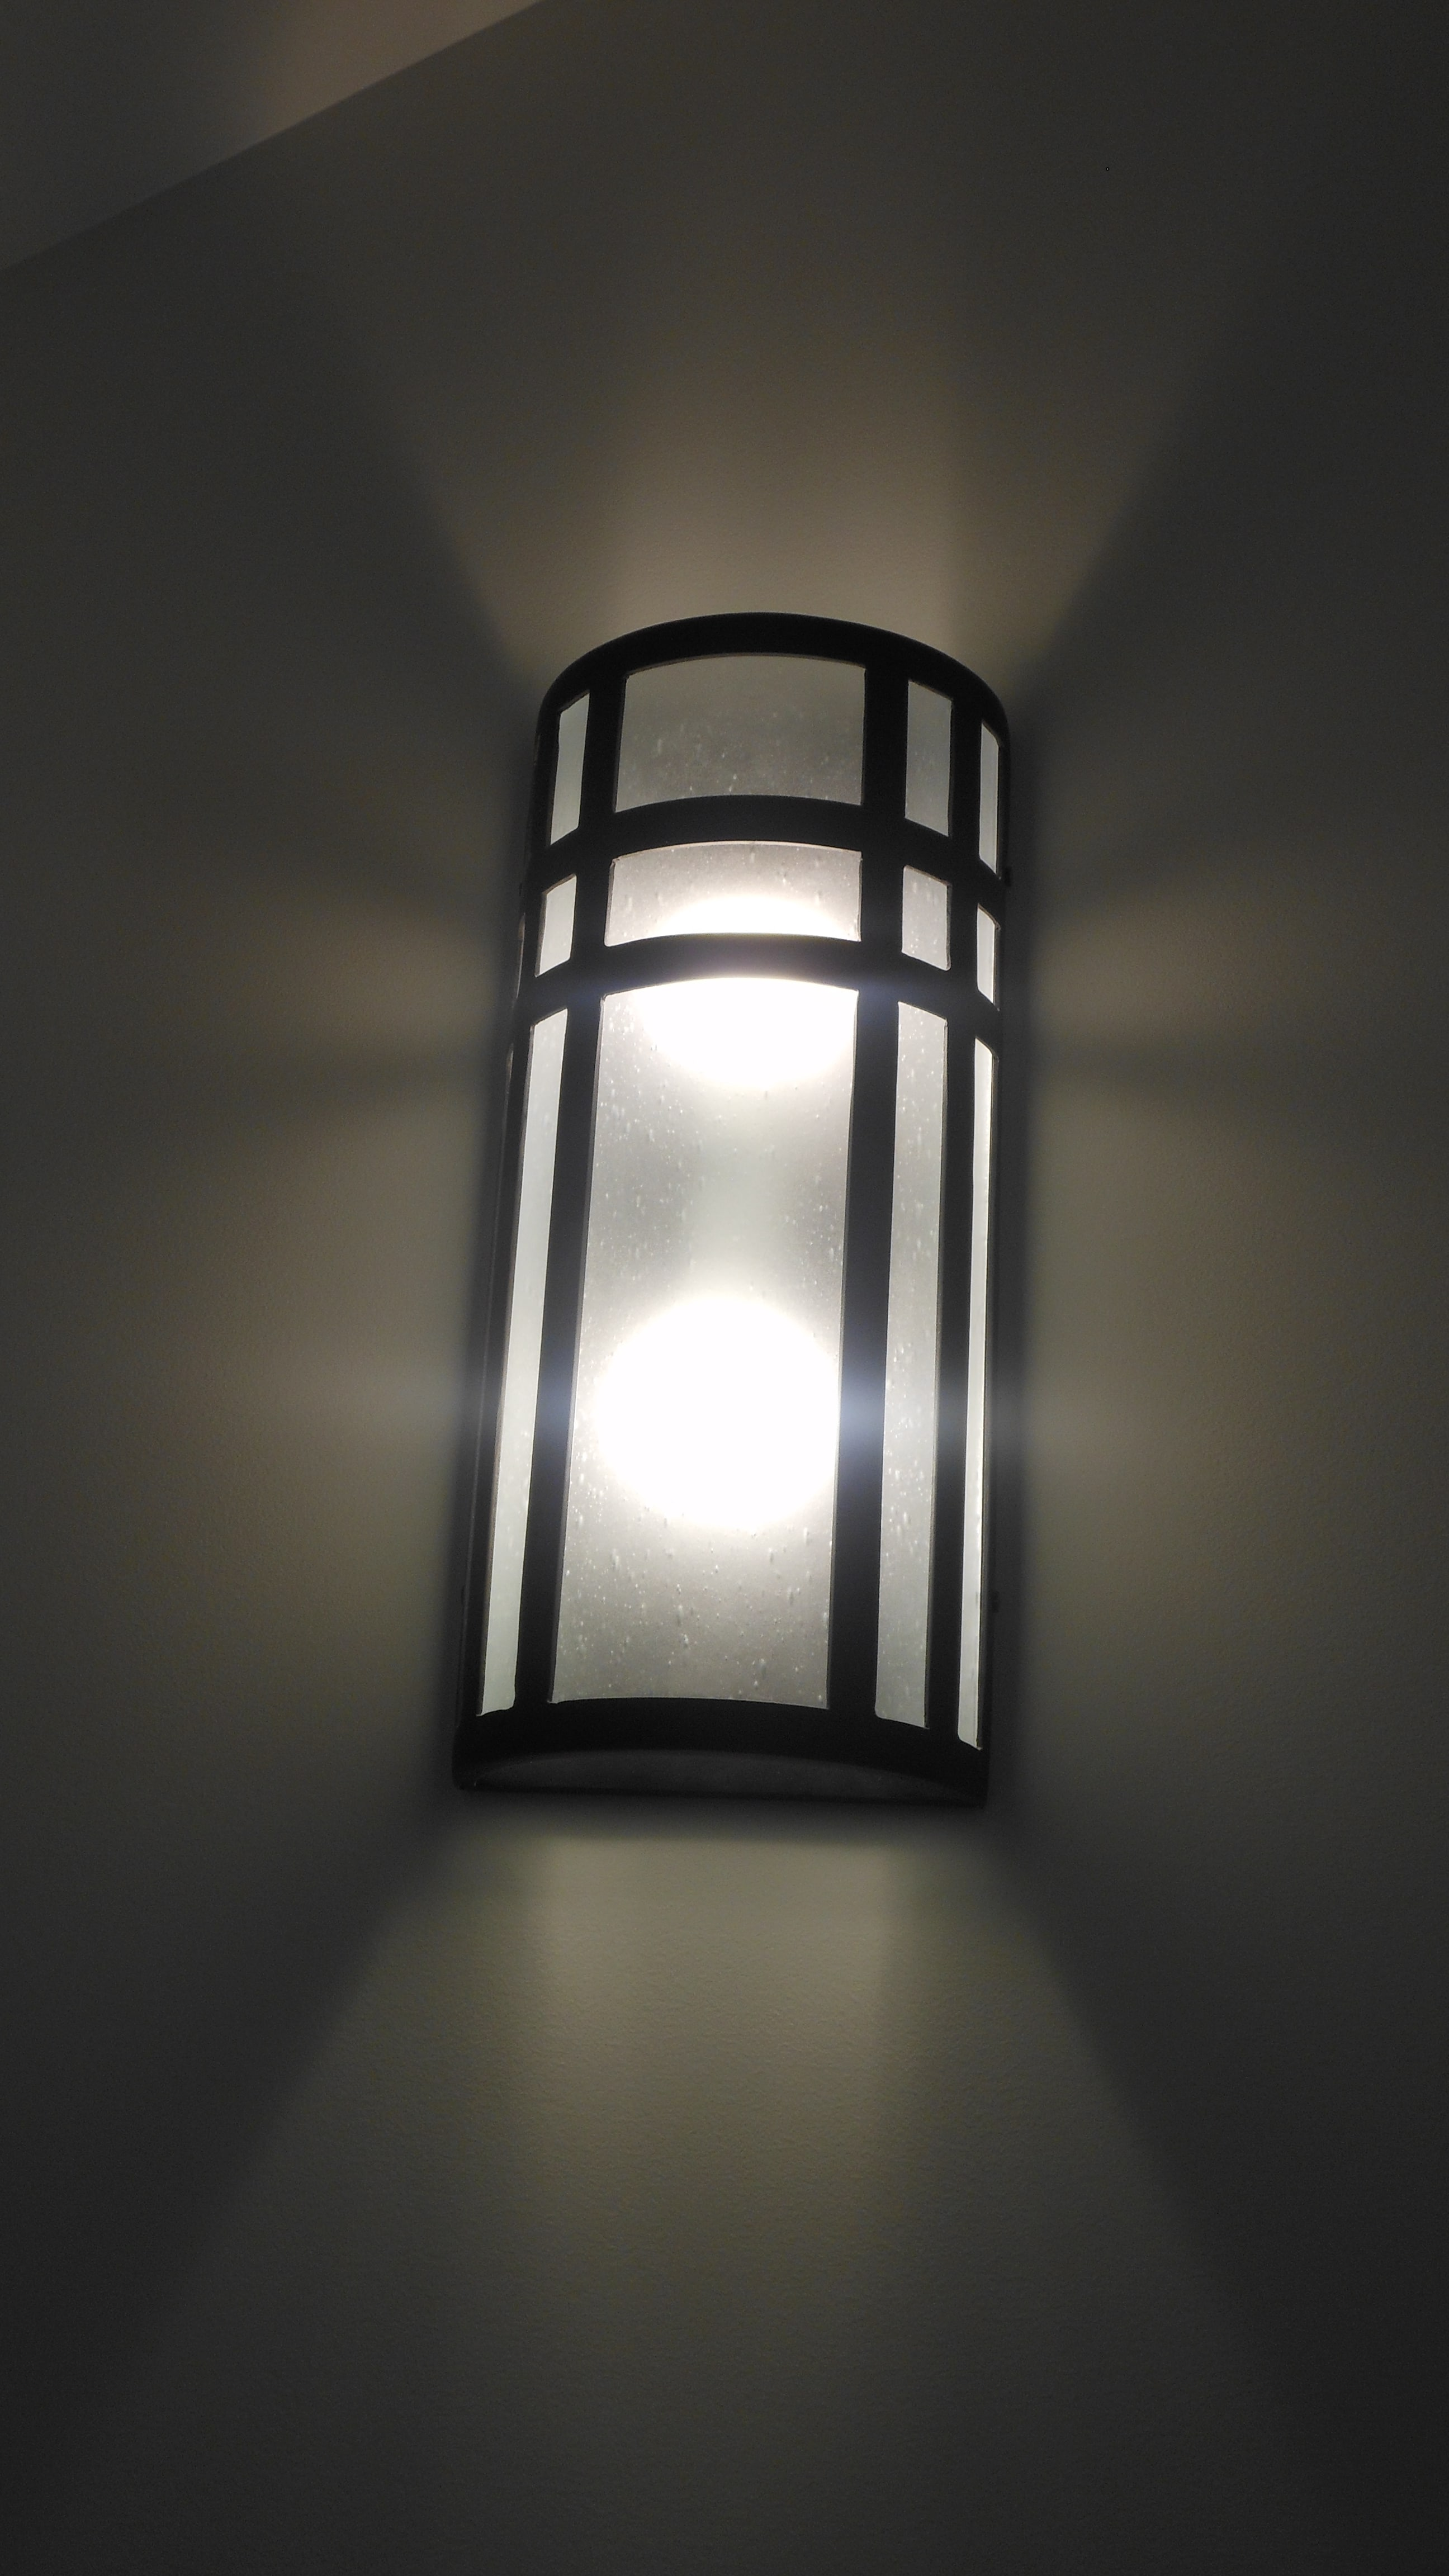 Handmade and Custom Designed Wine Cellar Lighting Fixtures for Residential and Commercial Wine Cellars